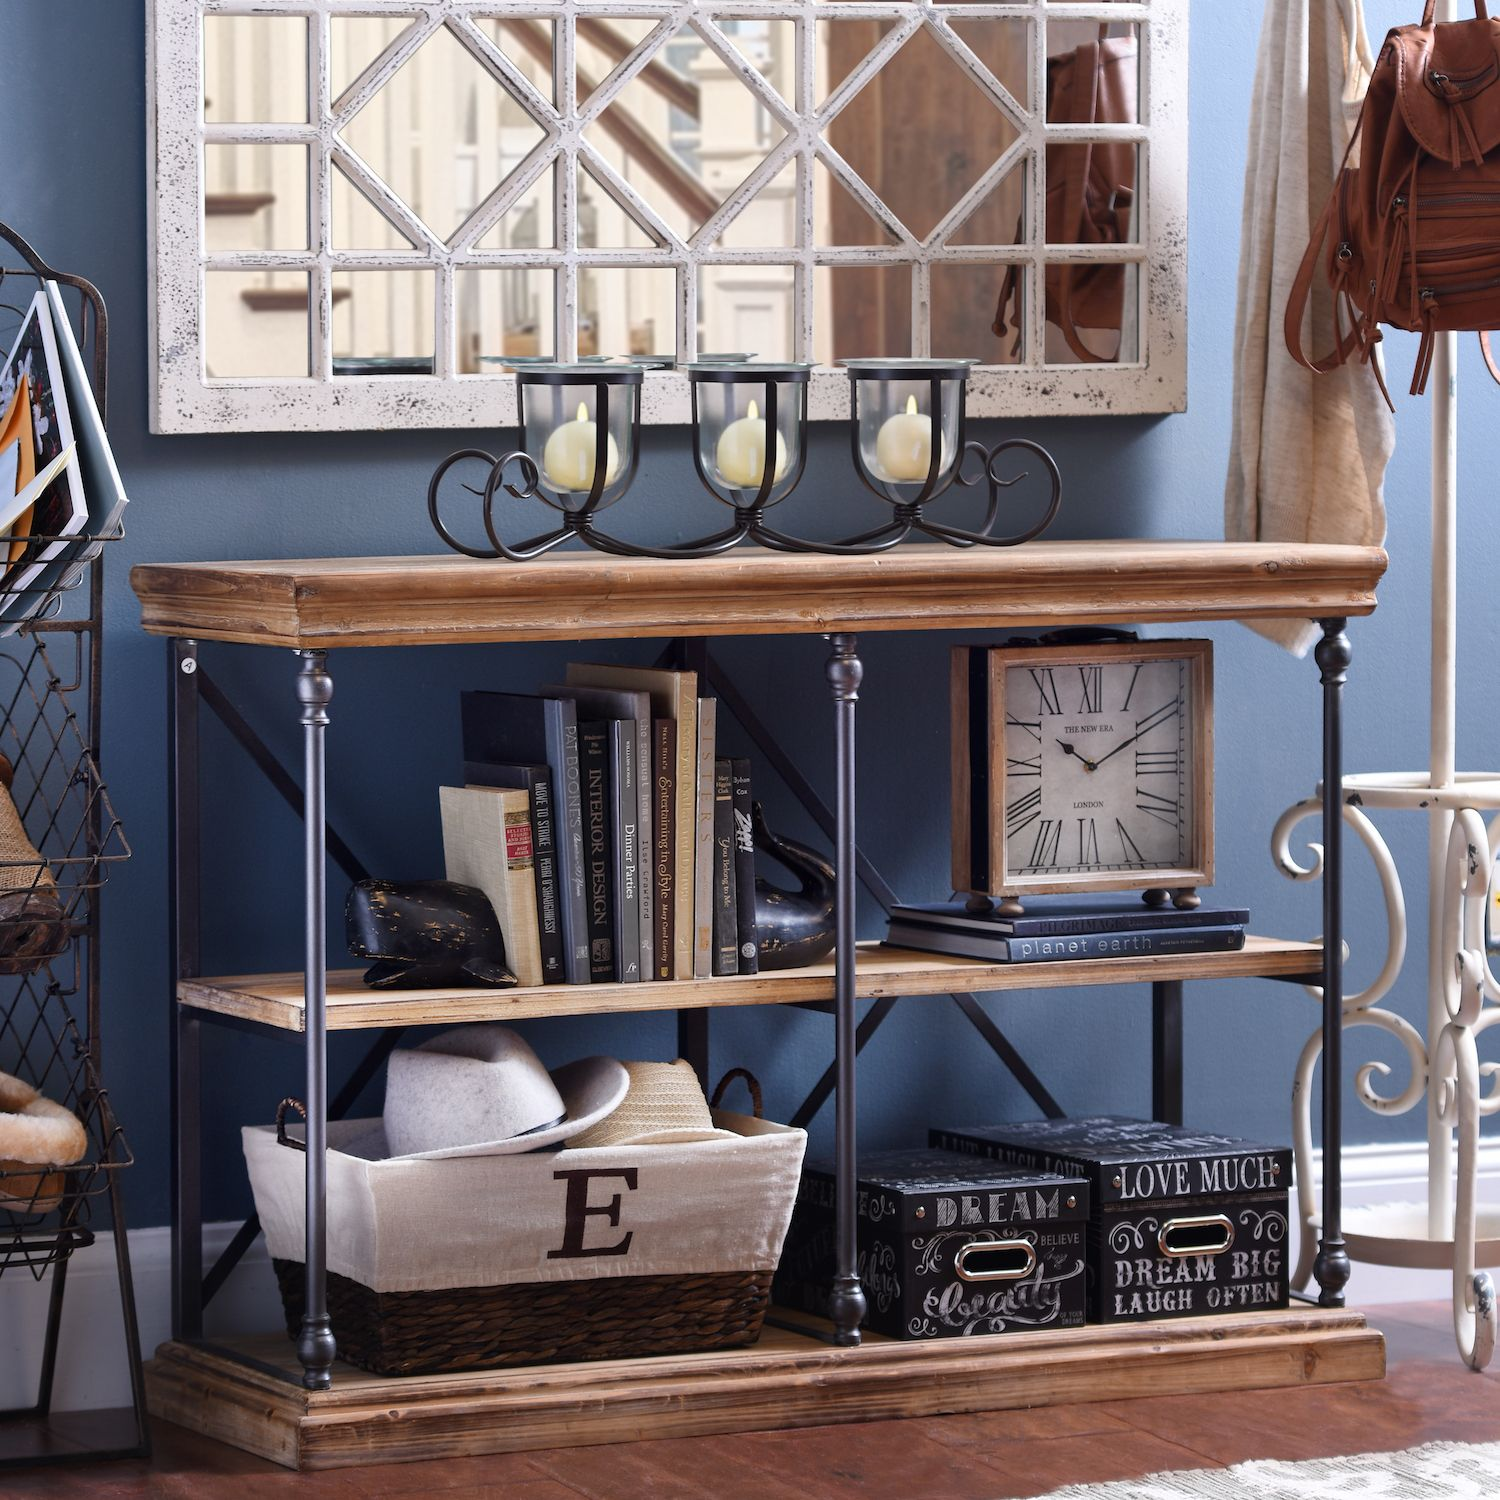 Sonoma two tier console table console tables consoles and rustic meets modern with the sonoma two tier console table it pairs reclaimed wood geotapseo Choice Image